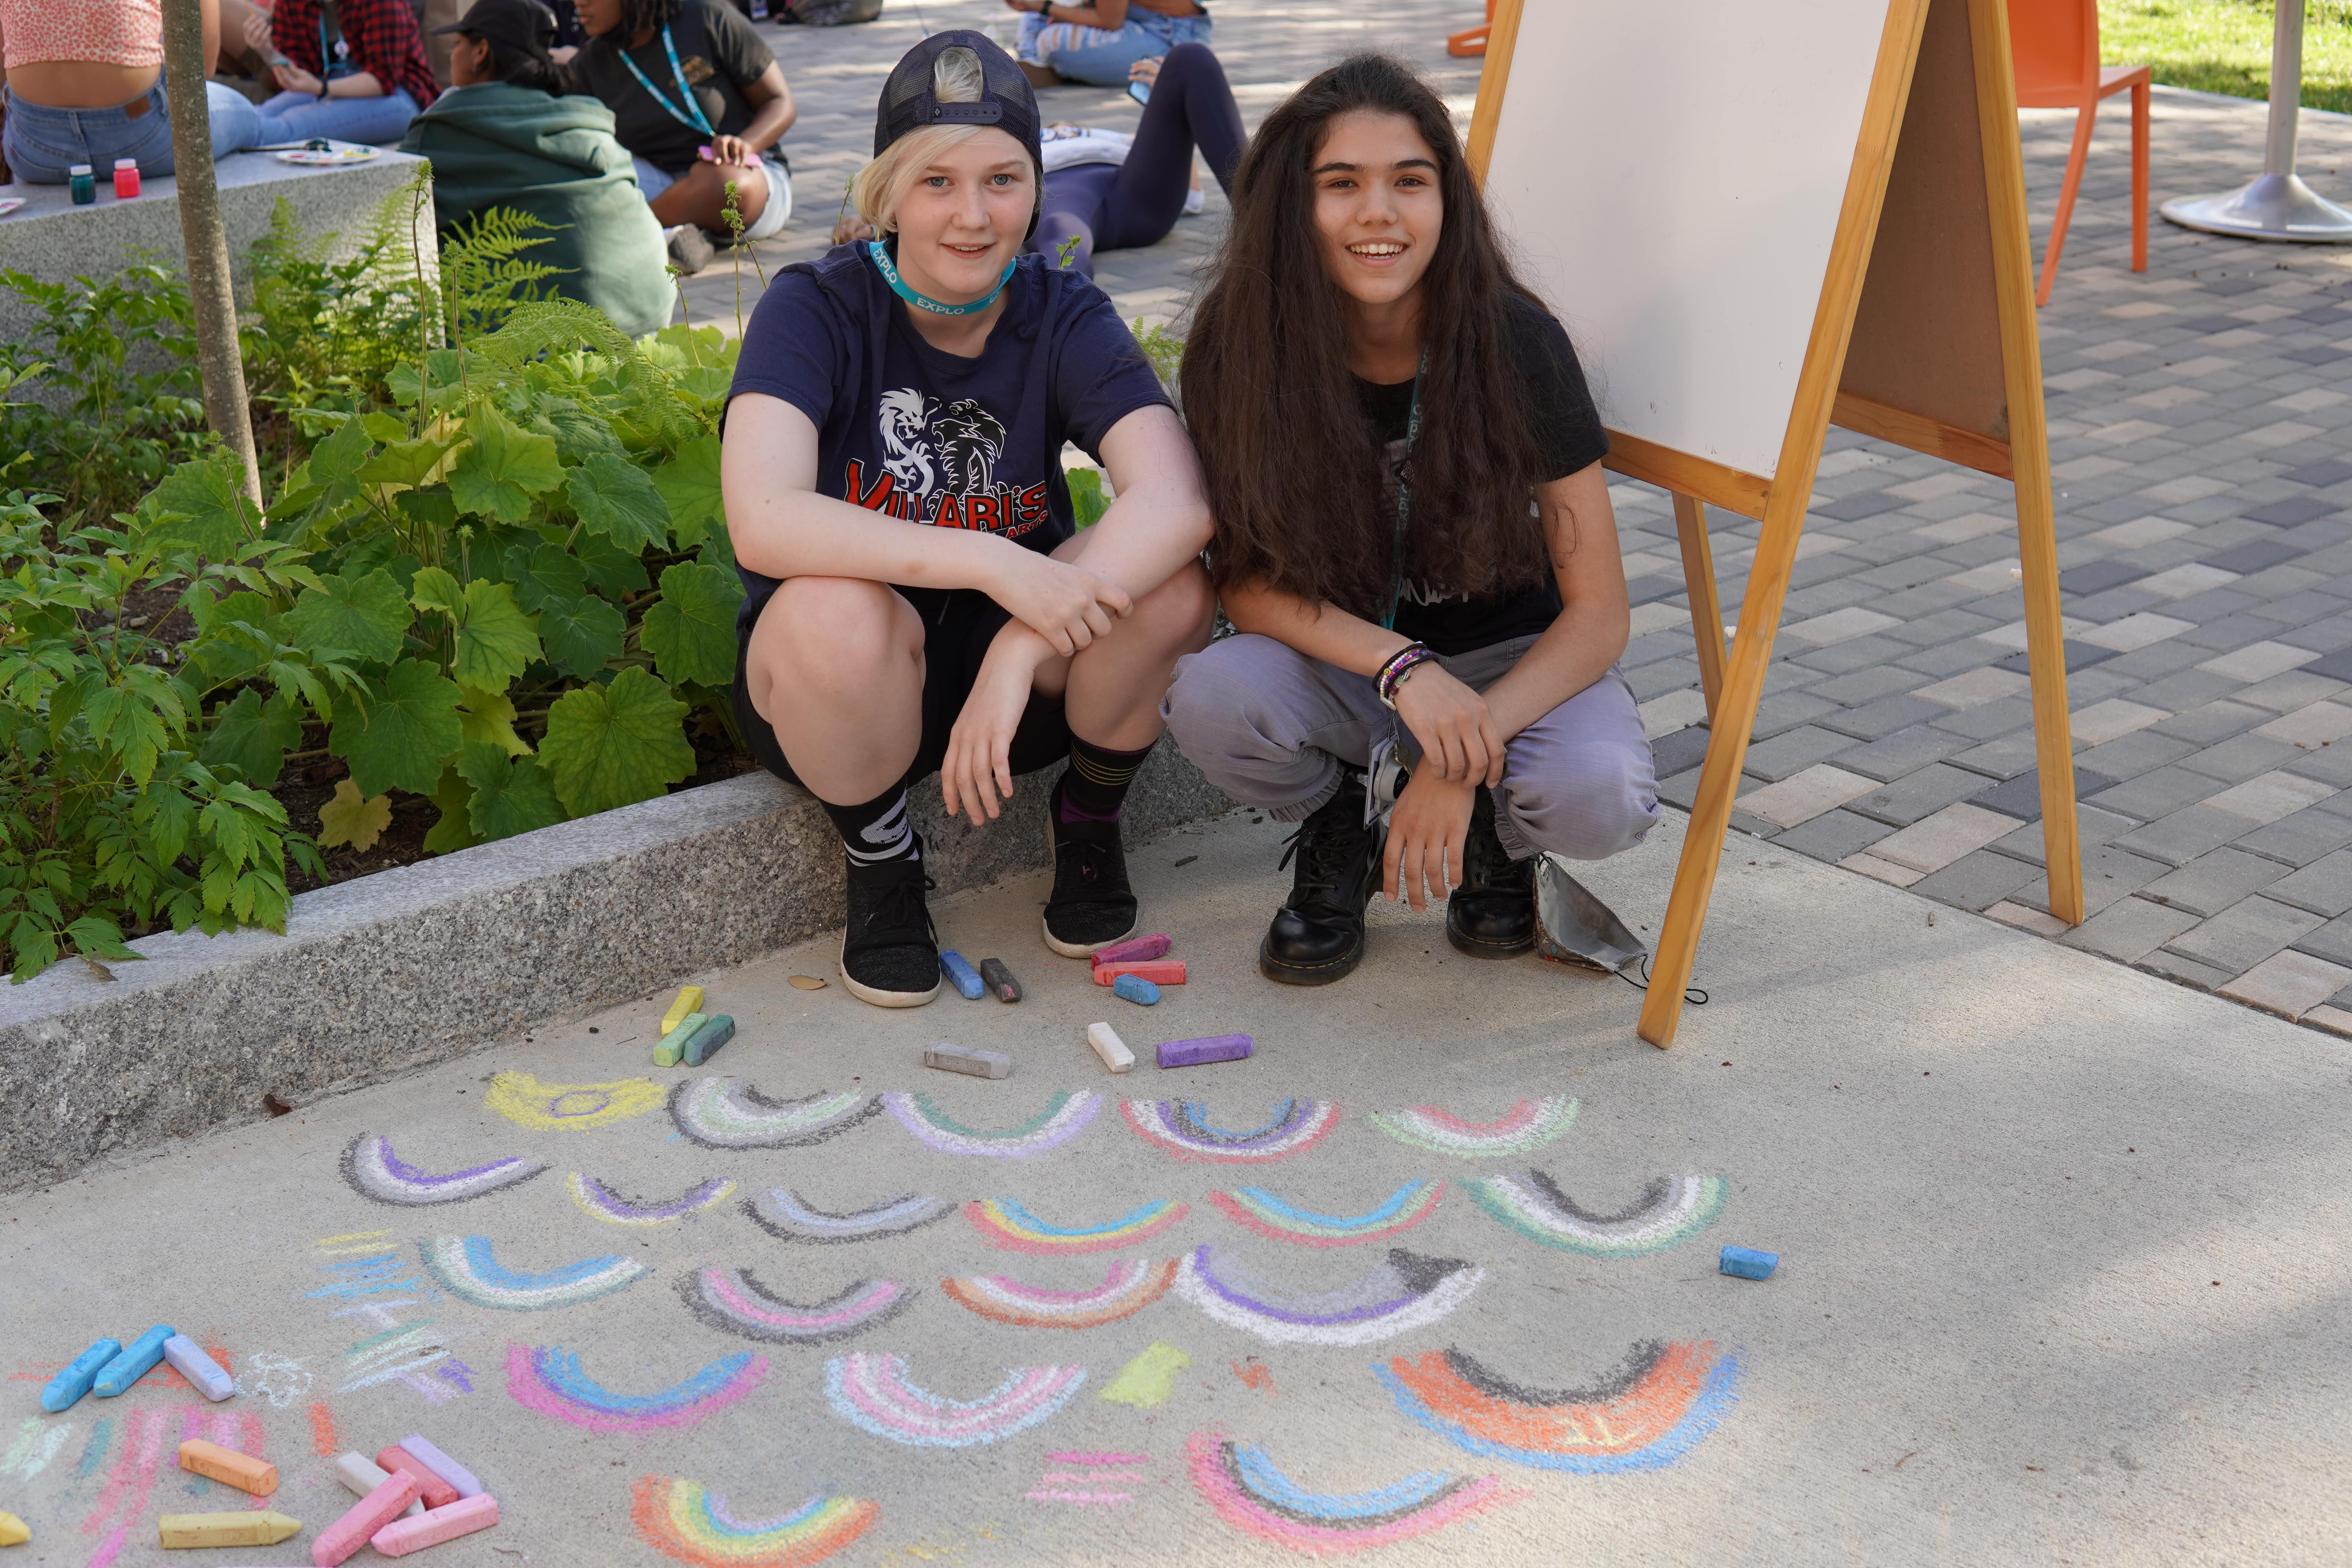 Two students sit next to the chalk Pride rainbows they drew on the sidewalk.